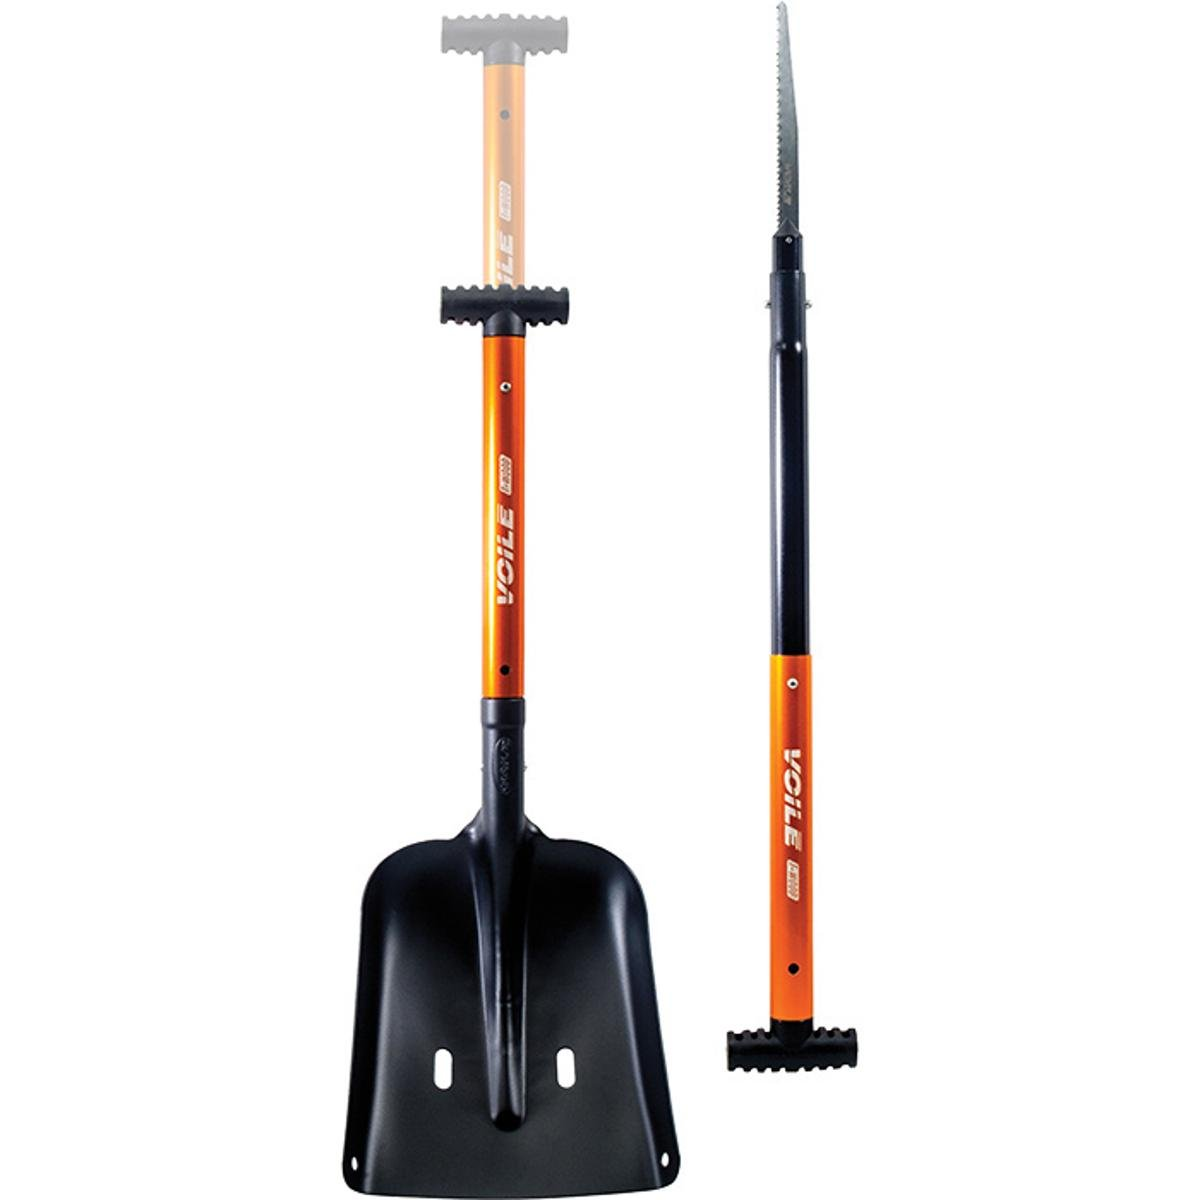 T-wood Avalance Shovel